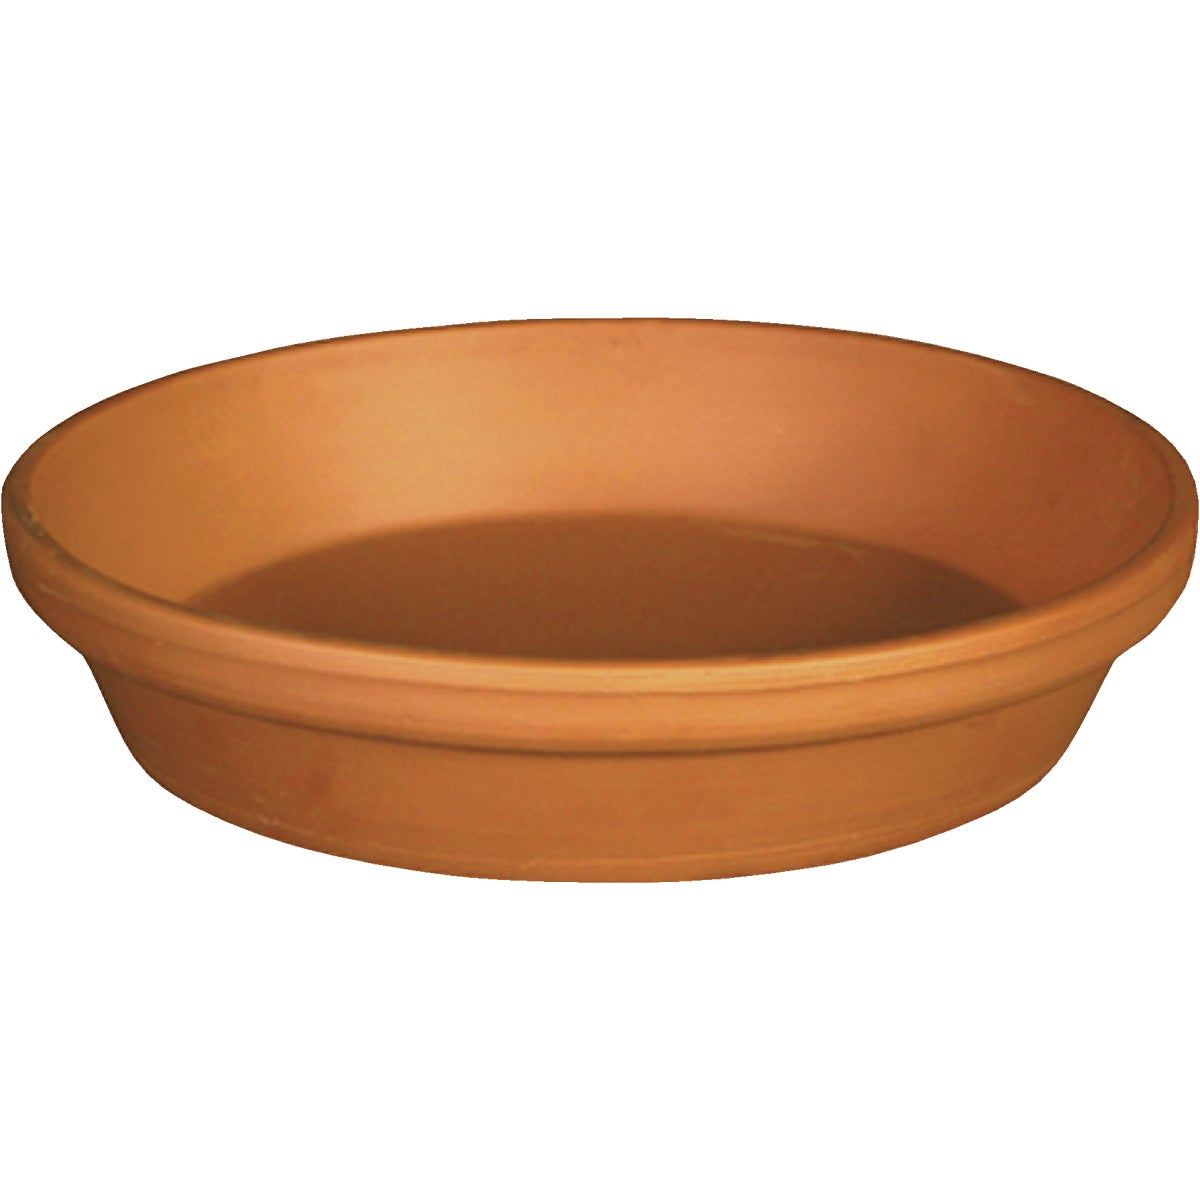 "9"" TC CLAY SAUCER - M8250PZ by Deroma"